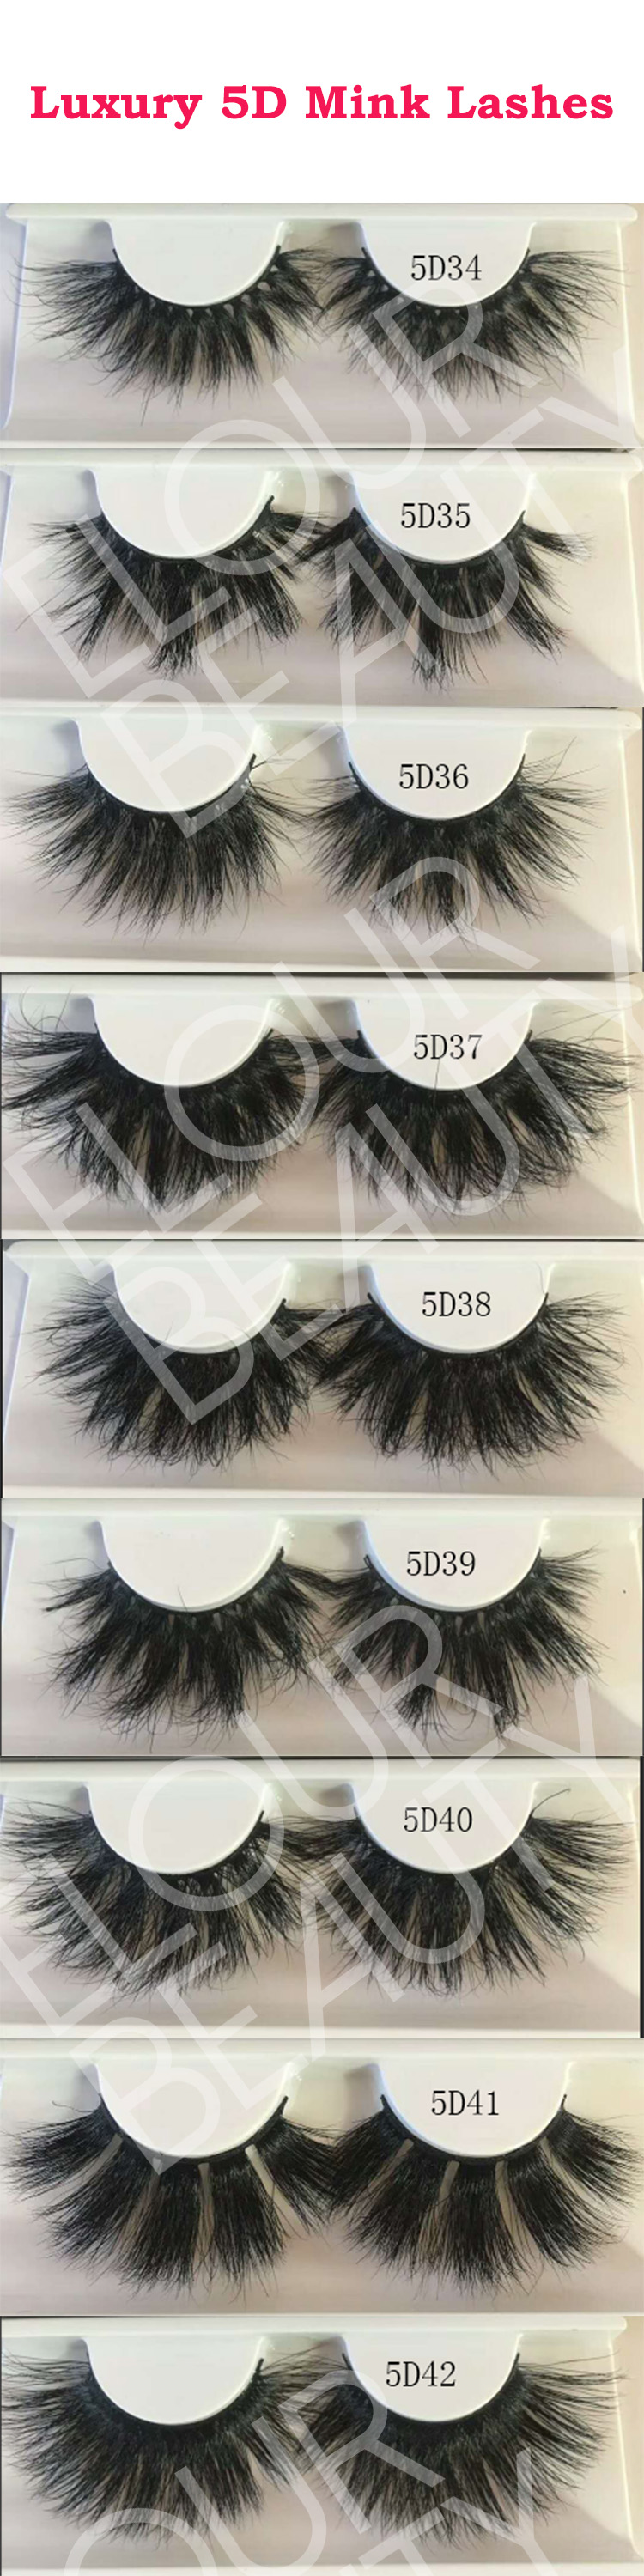 mink-lashes-vendor-wholesale.jpg